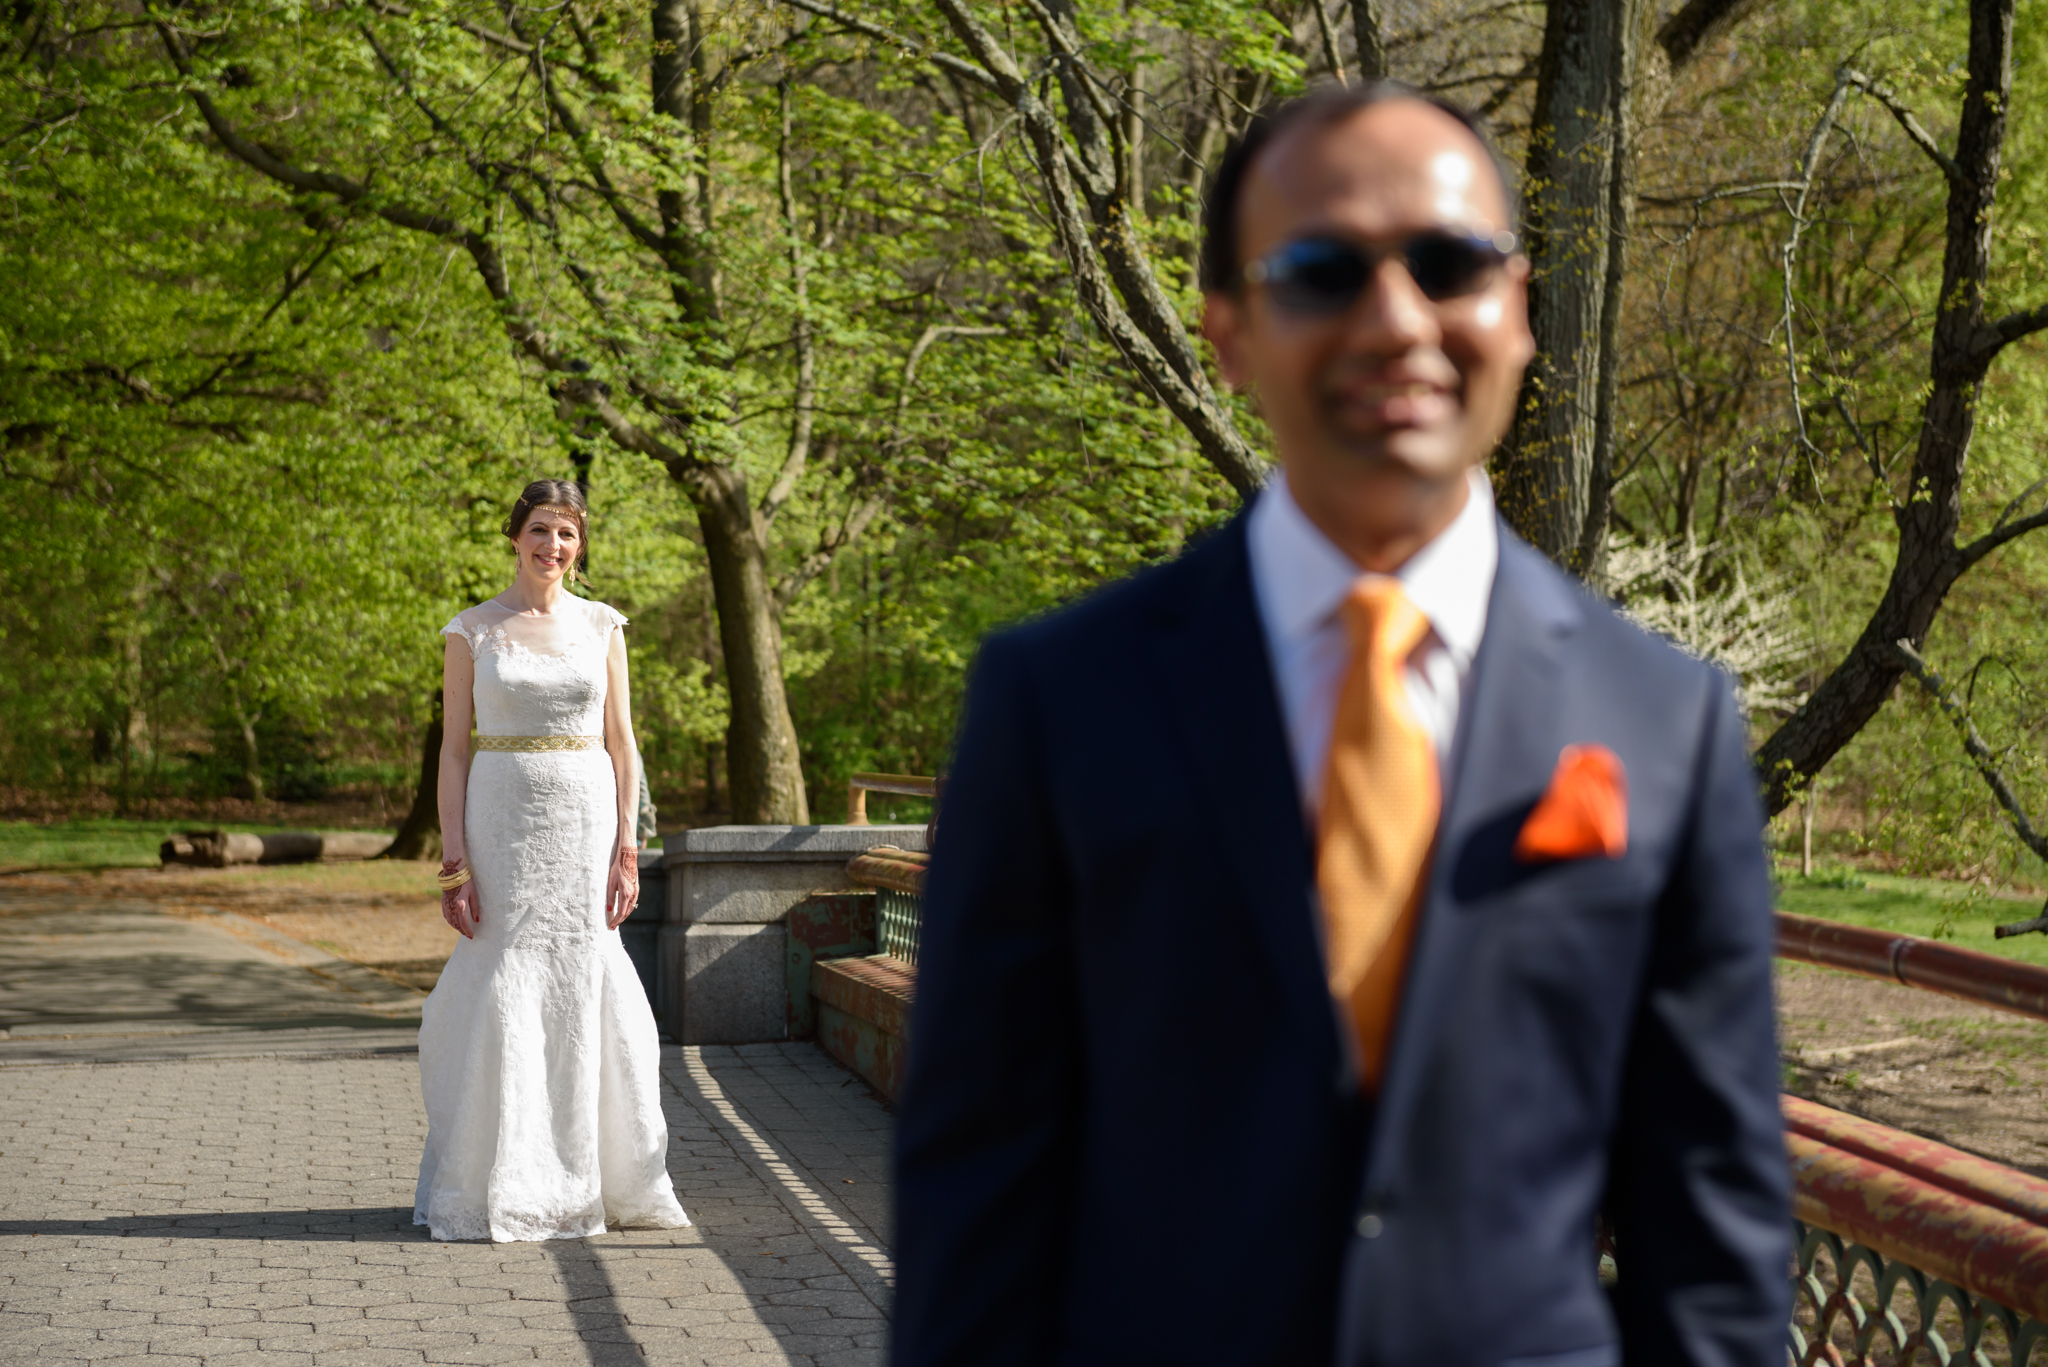 NY_Wedding Jill & Sayantan_230416_287.jpg